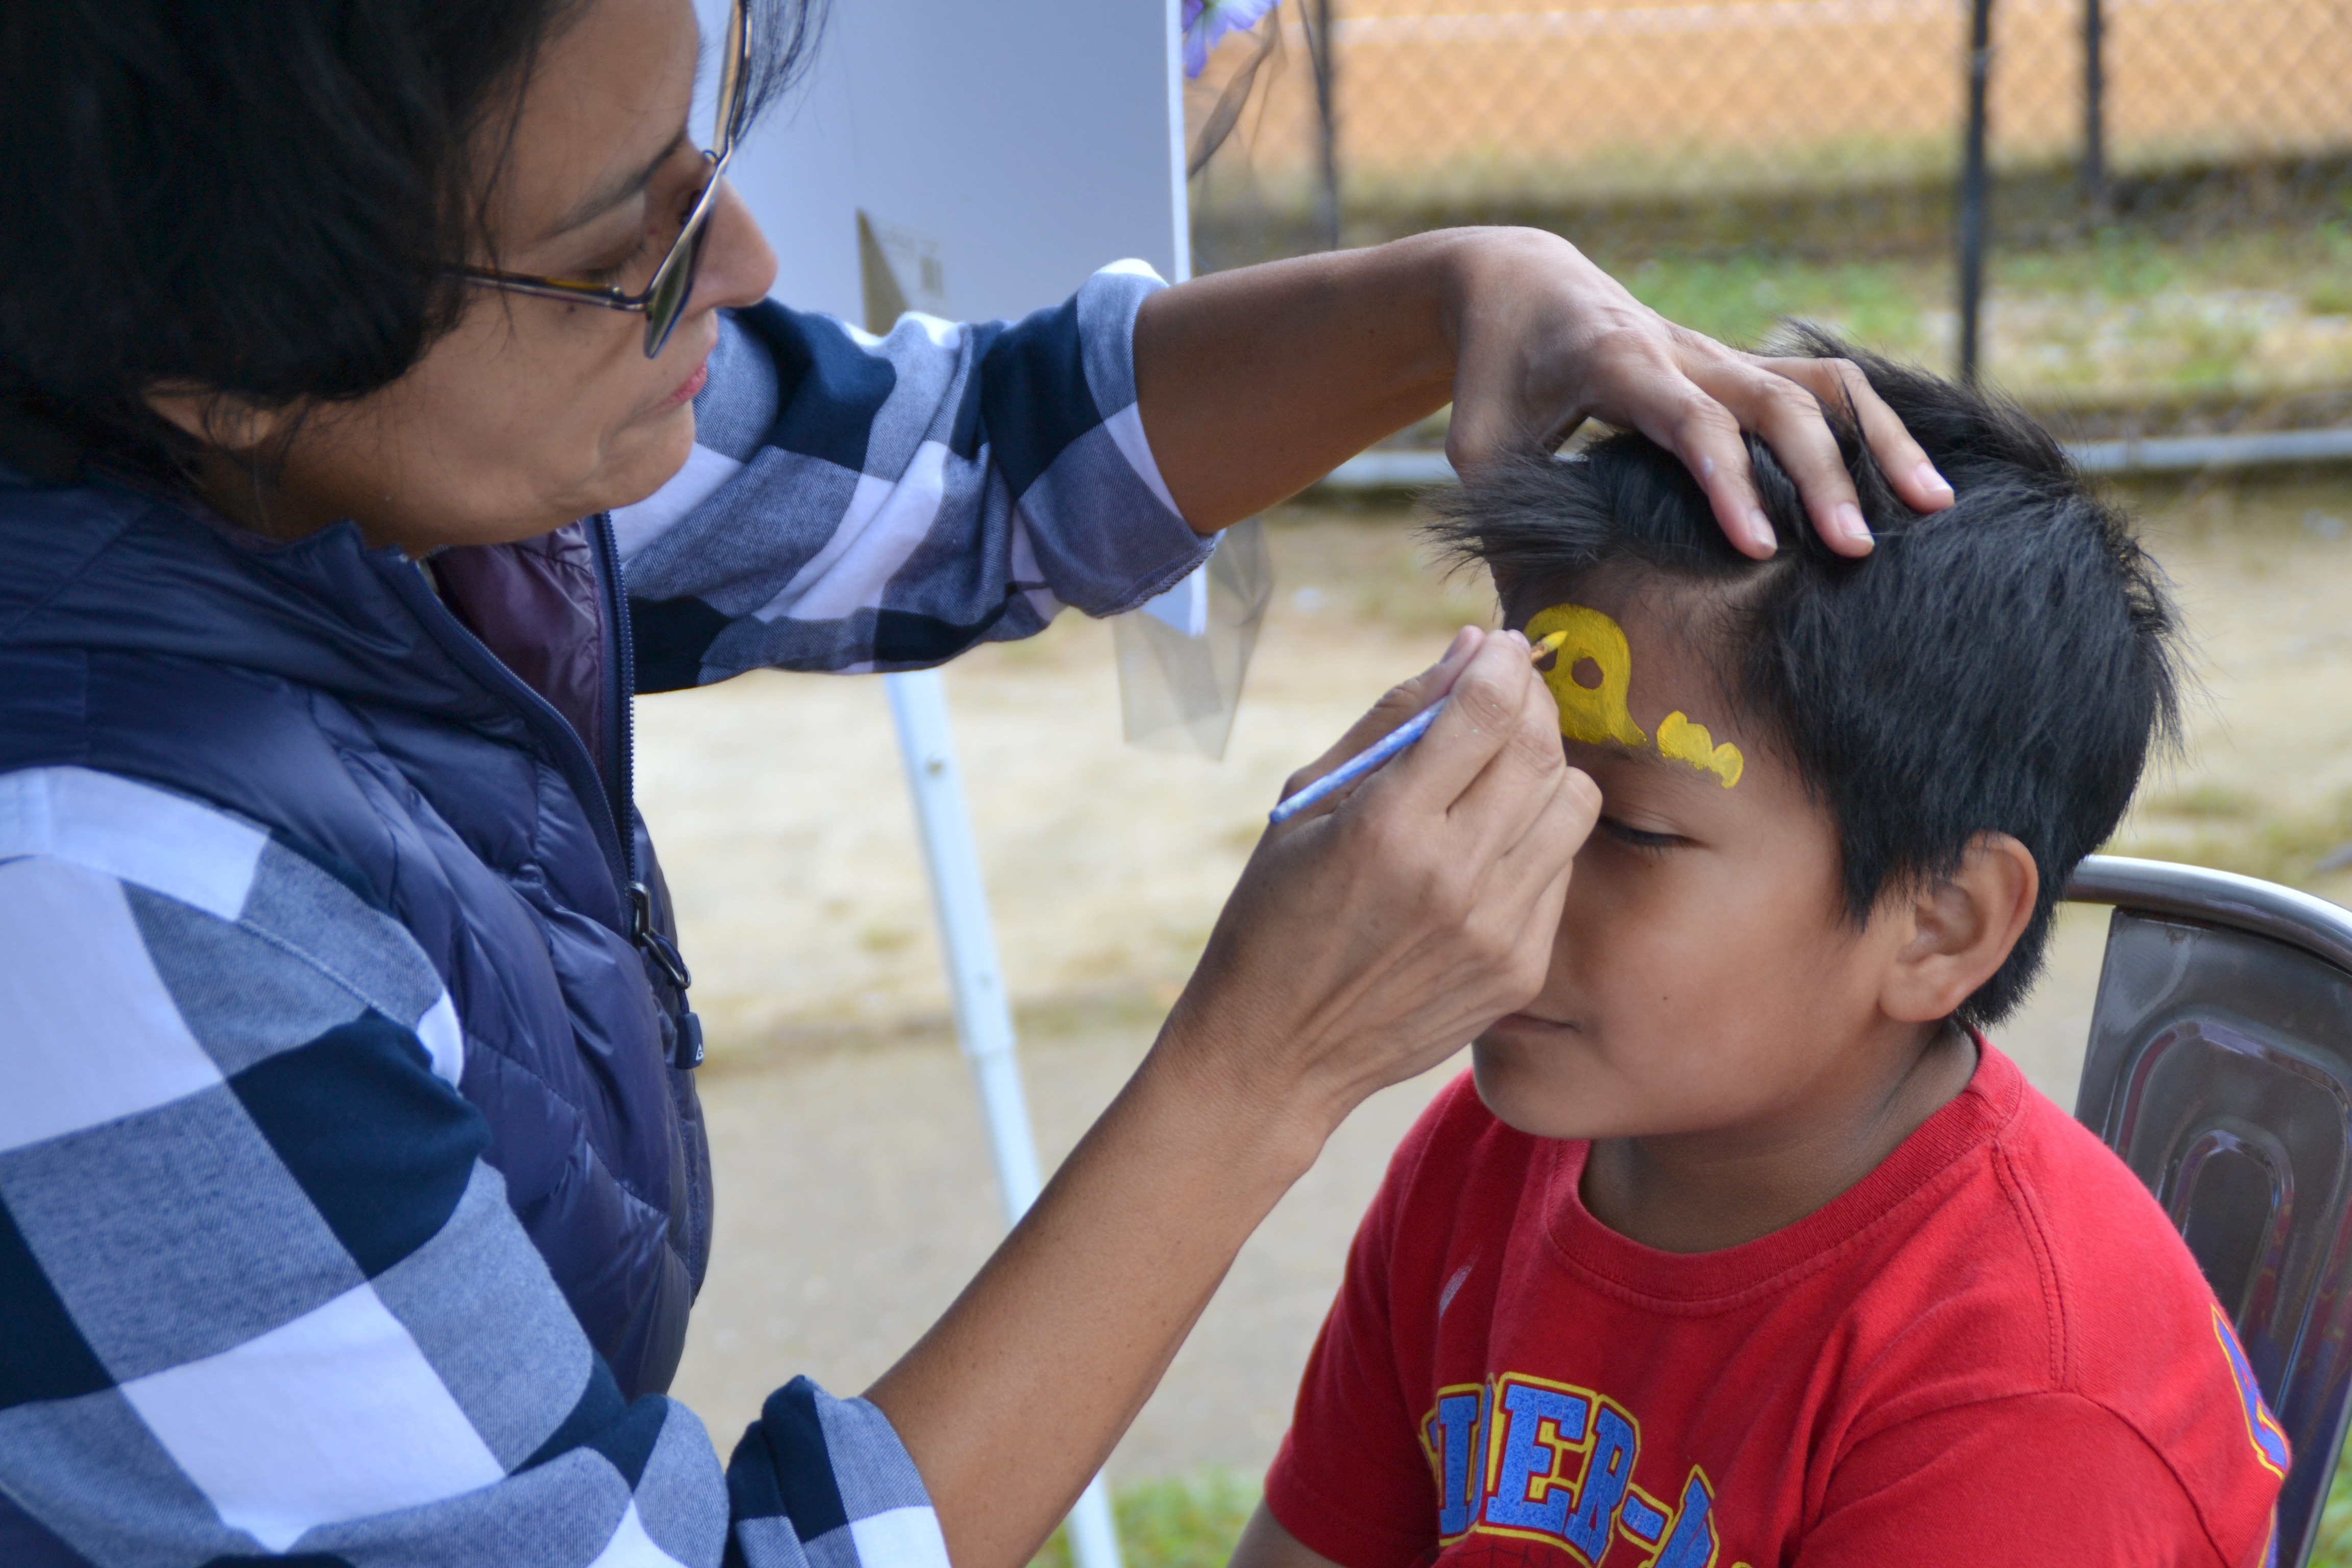 Volunteer face painting at Imagine Festival